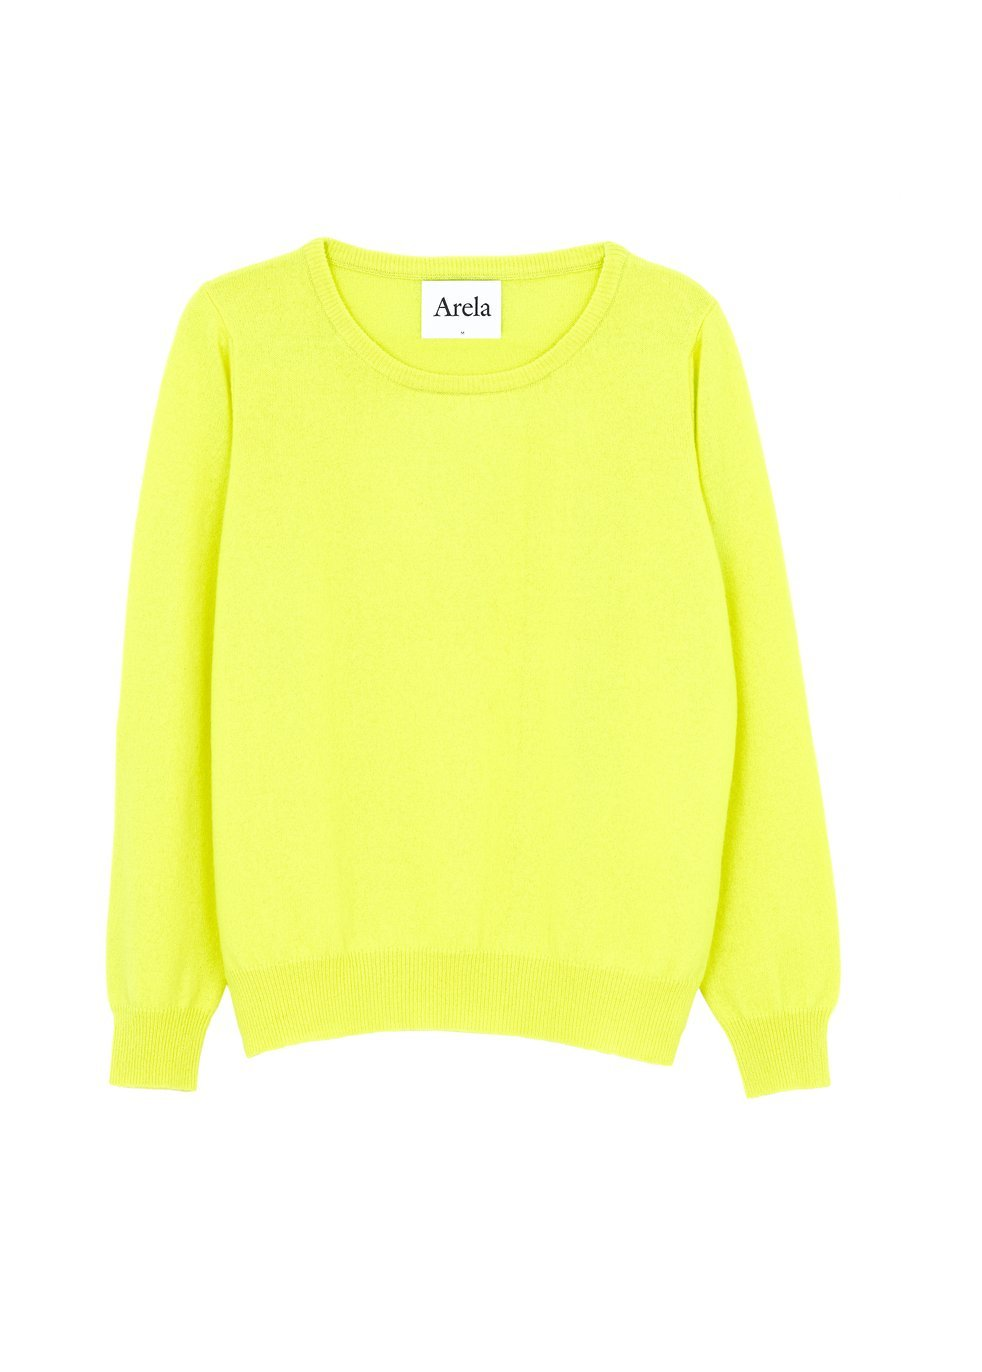 ARELA Laine Cashmere Sweater In Bright Yellow